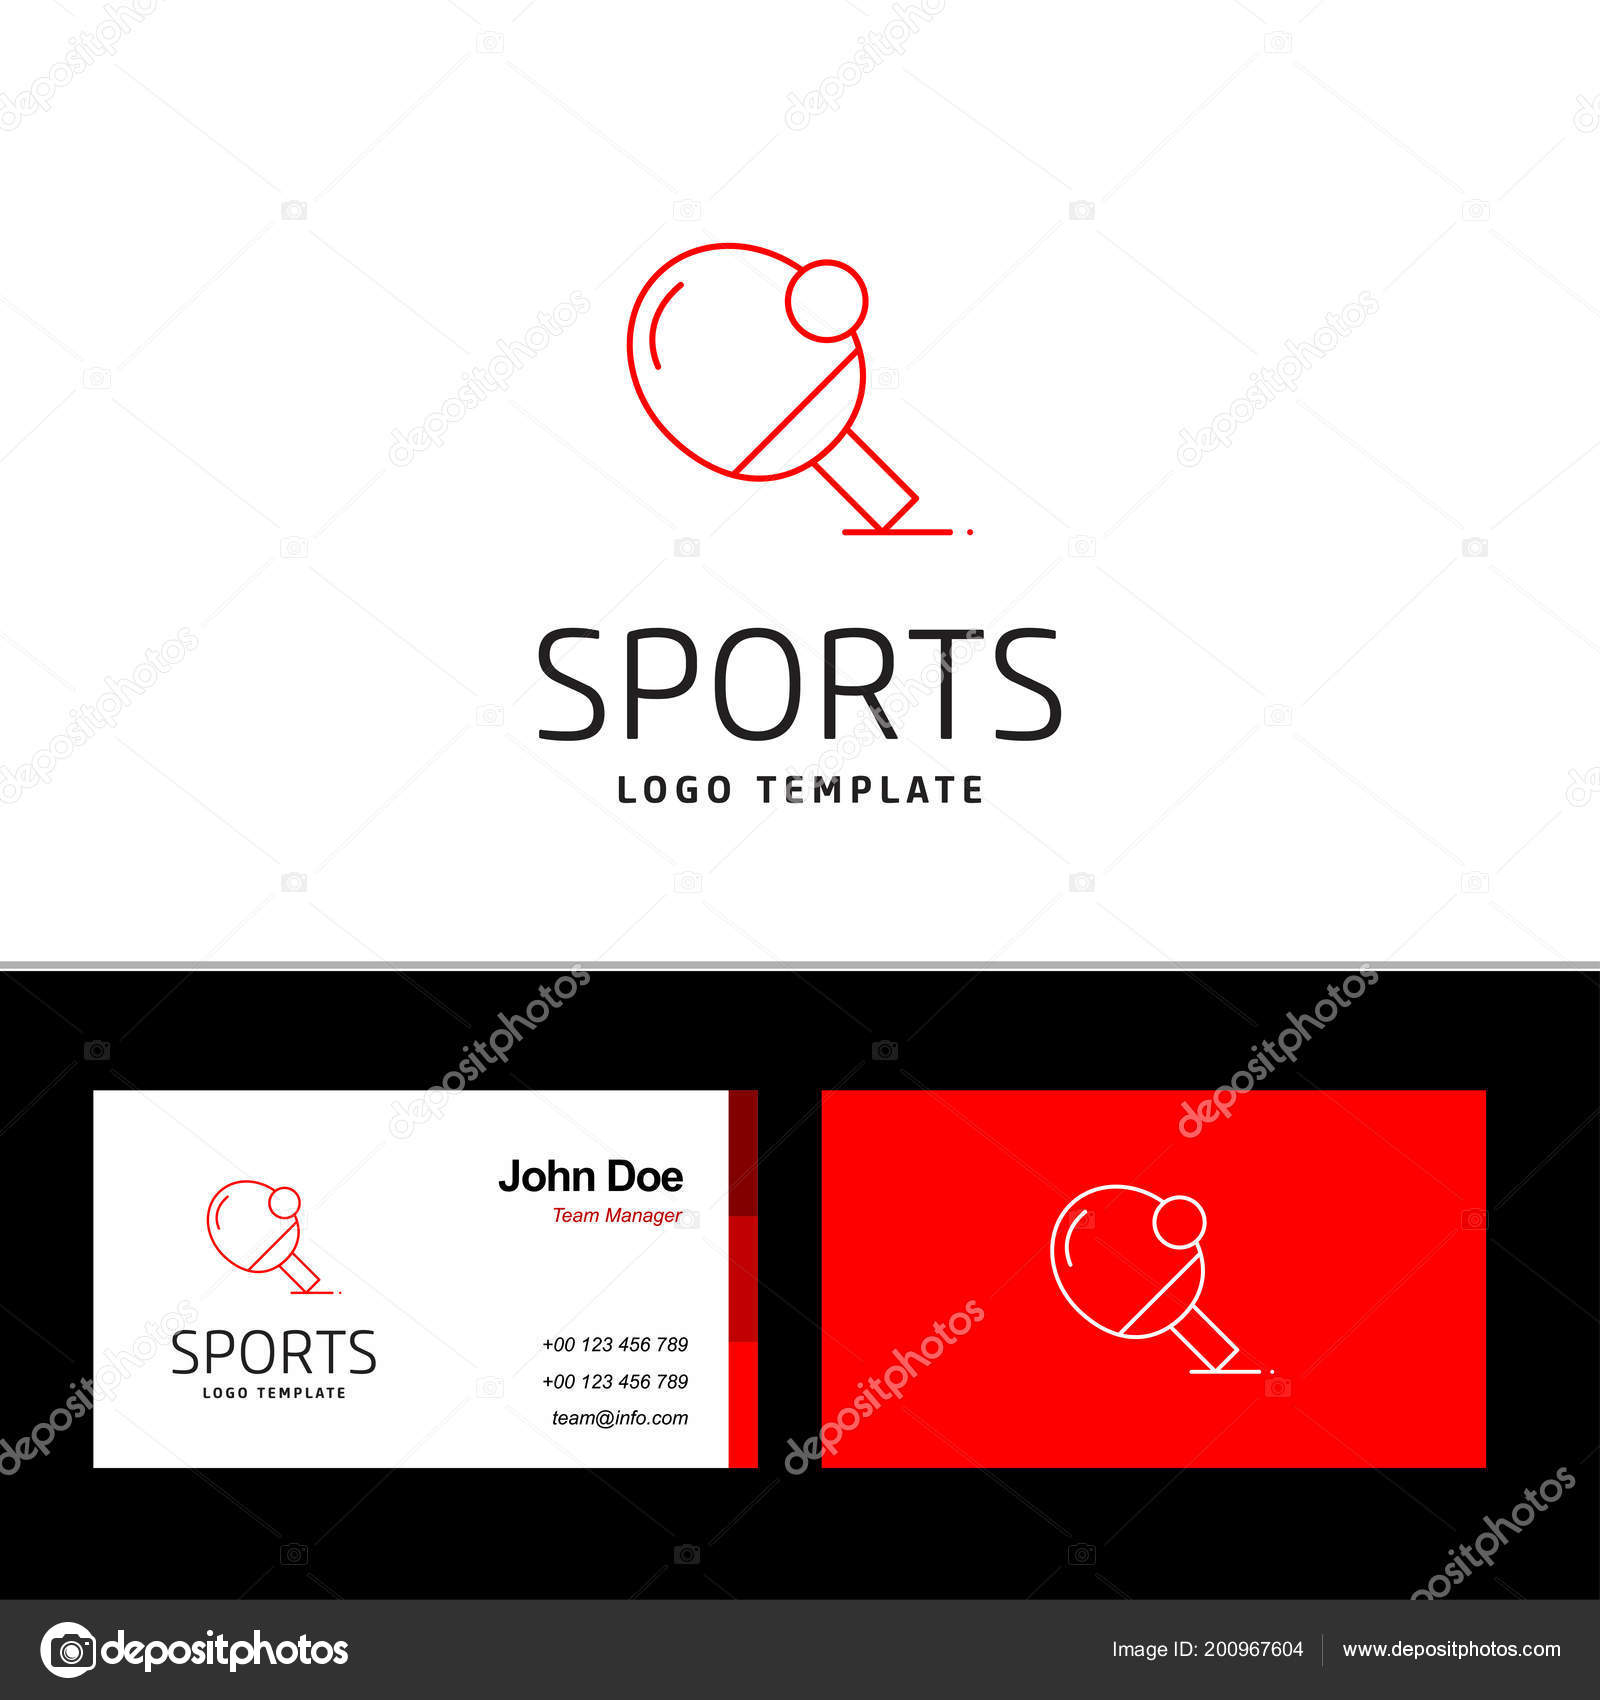 Illustration Vectorielle Conception Carte Visite Avec Logo Sports